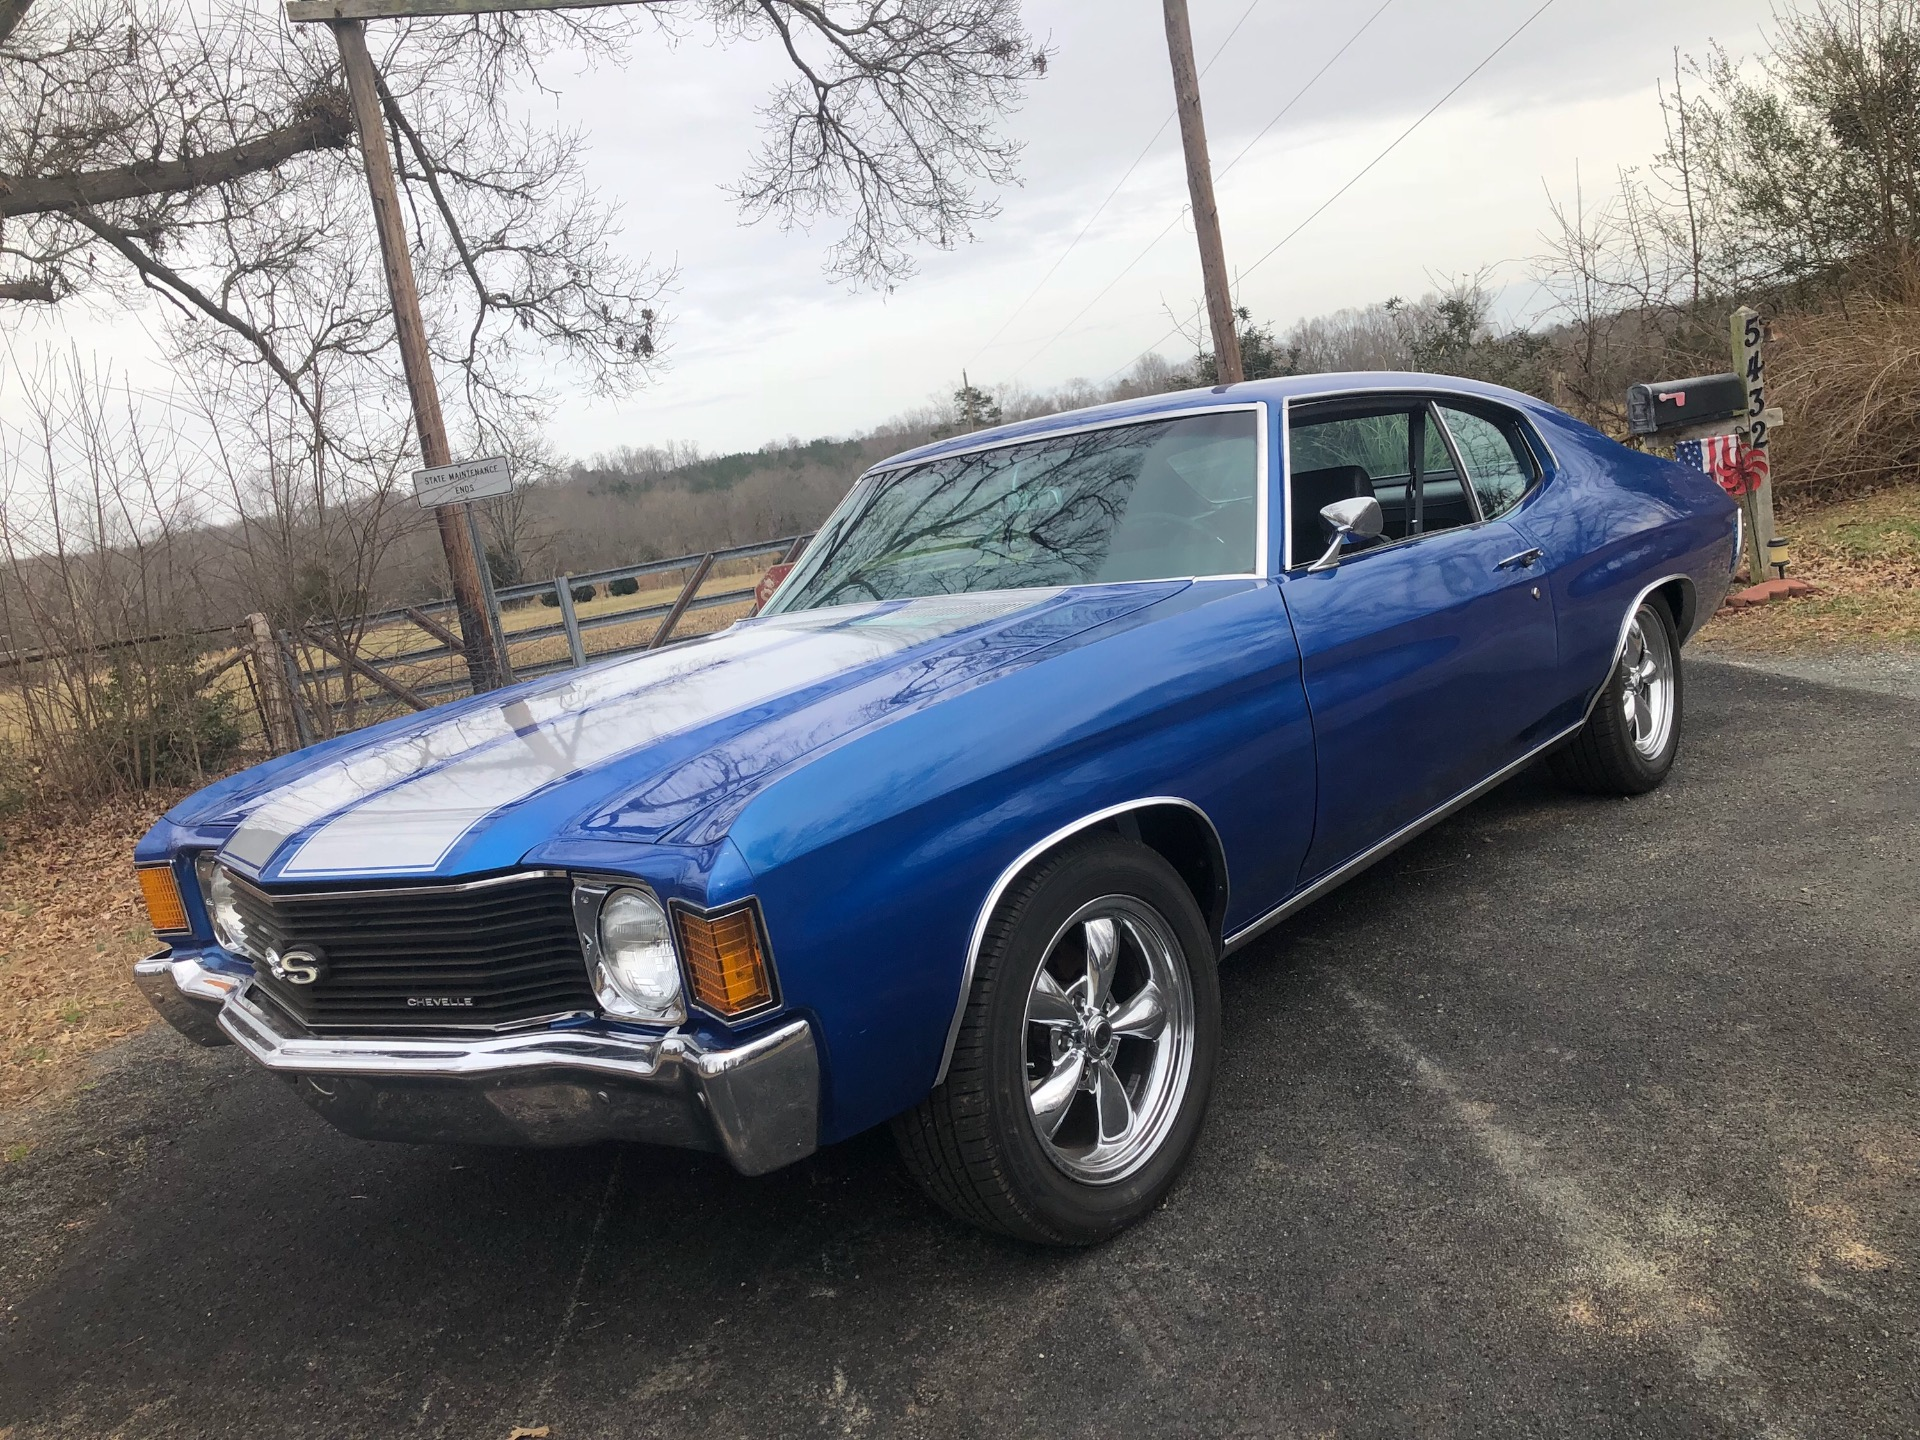 Photo 1972 Chevrolet Chevelle -FRAME OFF RESTORED 2017-SS GAUGES-AIR CONDITIONING-SOLID MUSCLE CAR-